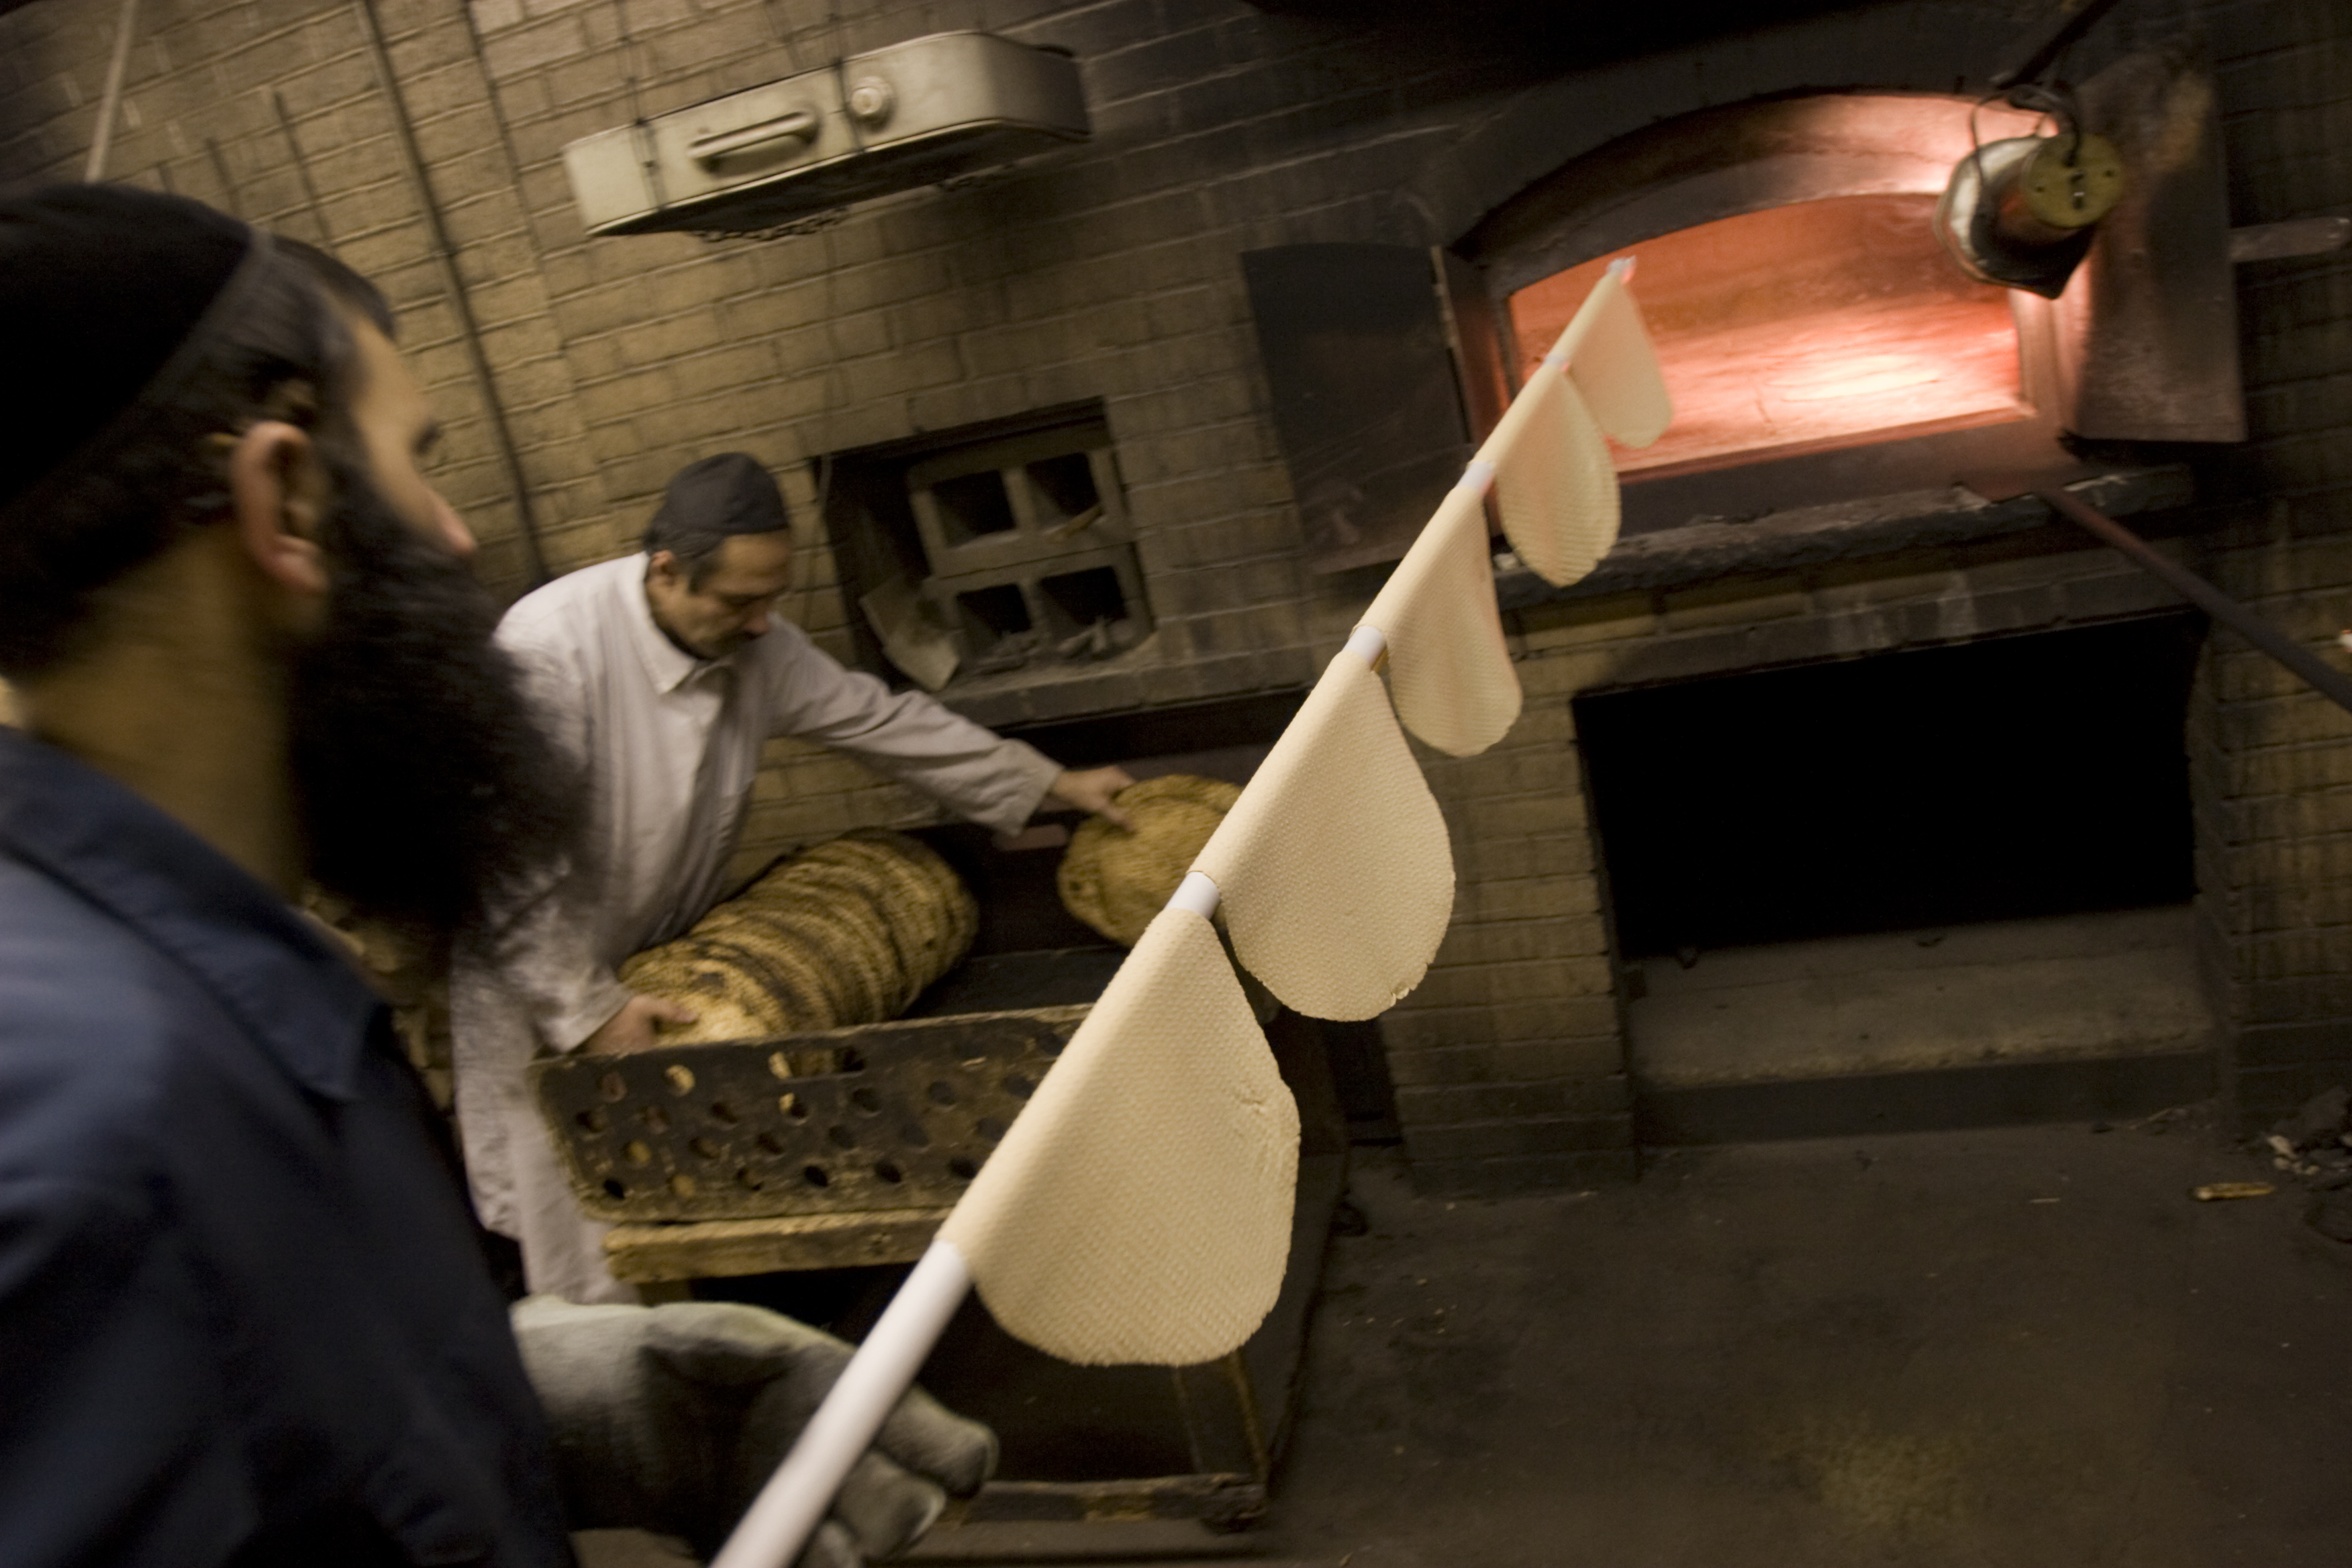 http://cdn.history.com/sites/2/2014/02/pupa-and-zehlem-matzoh-bakery.jpg